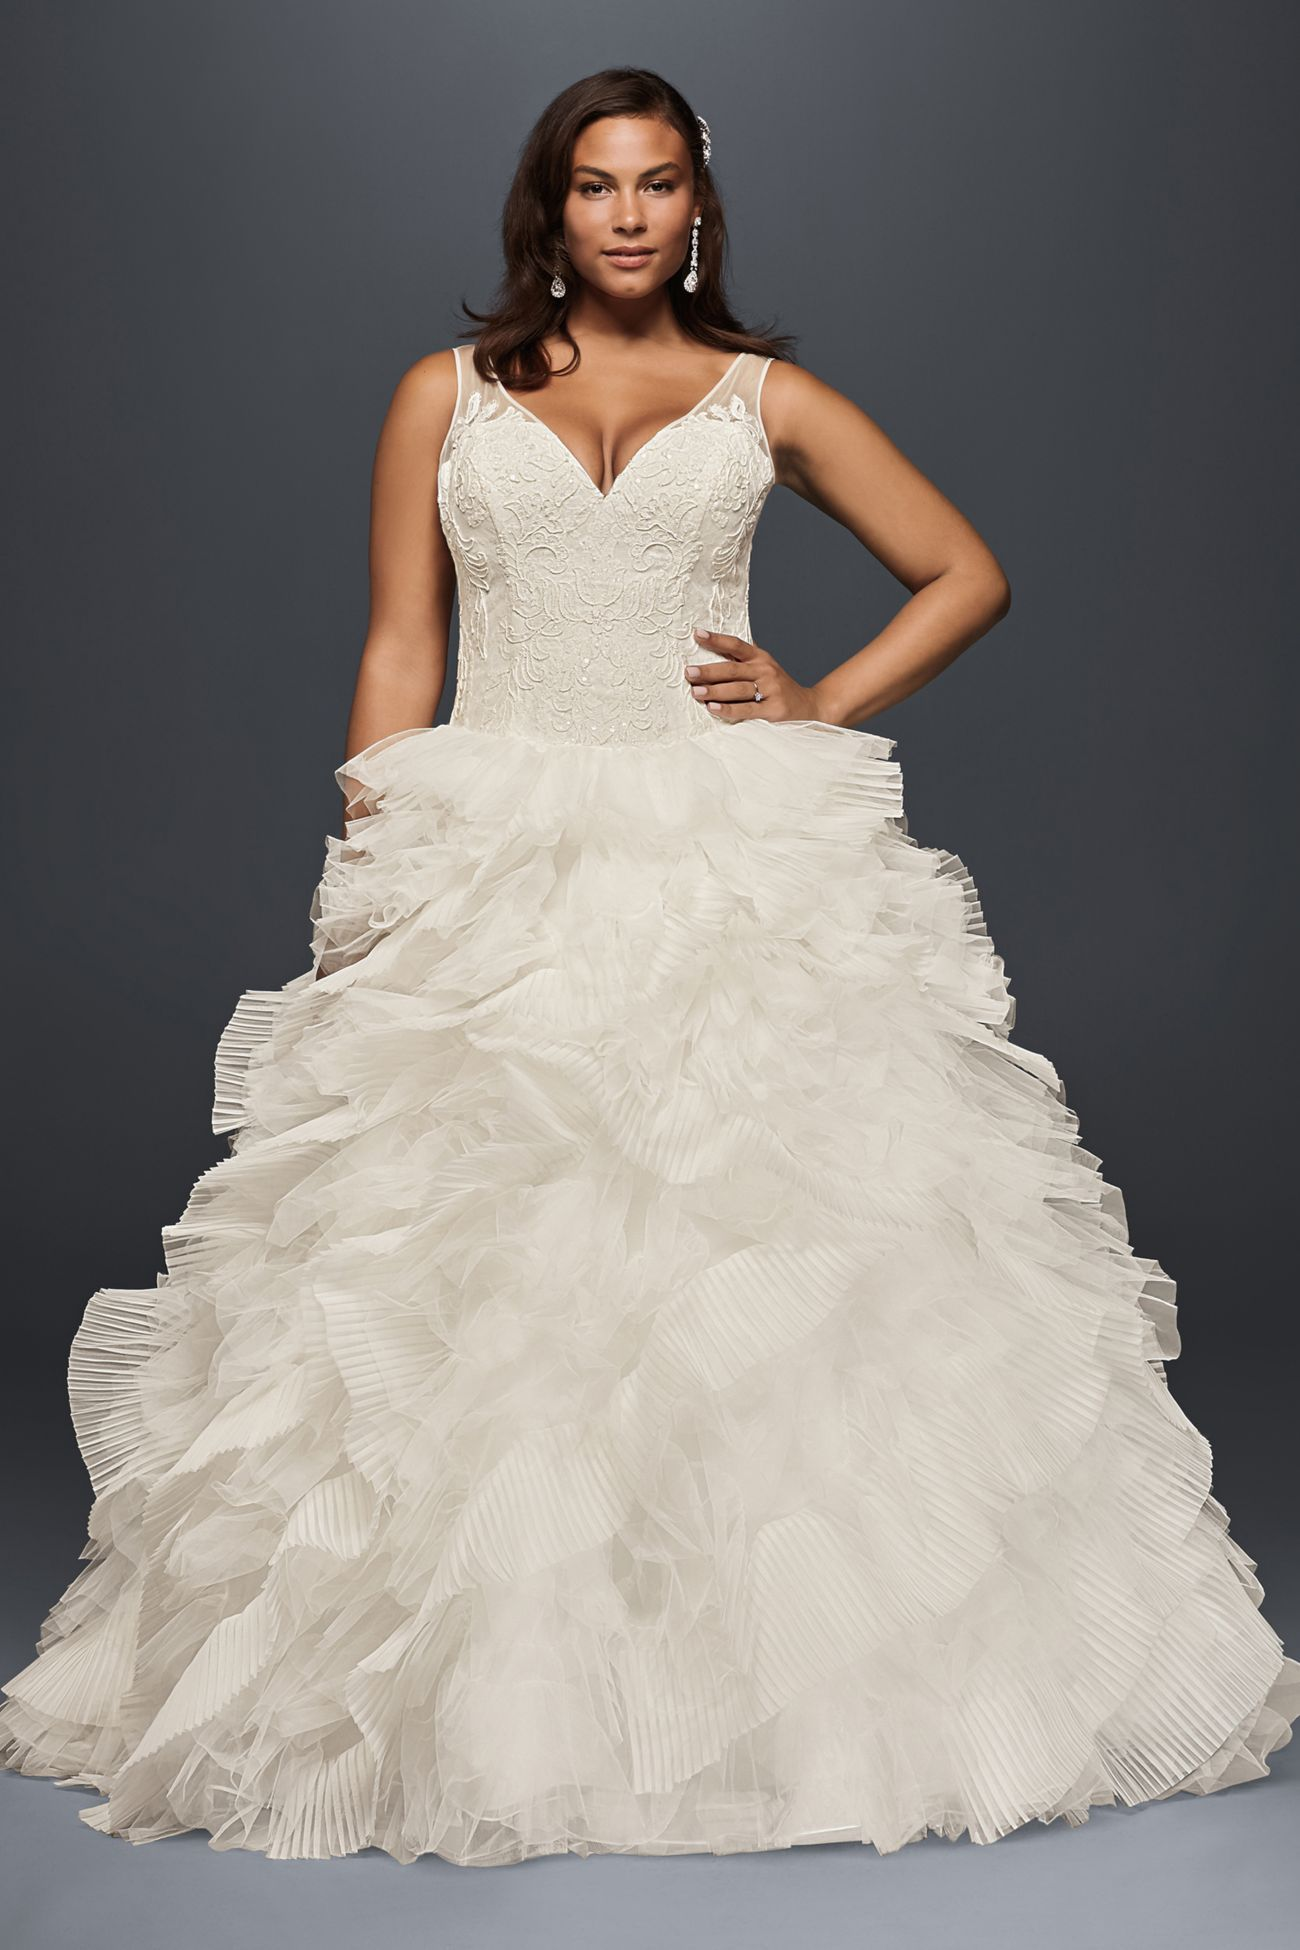 Swg wedding pinterest wedding dress ball gowns and wedding